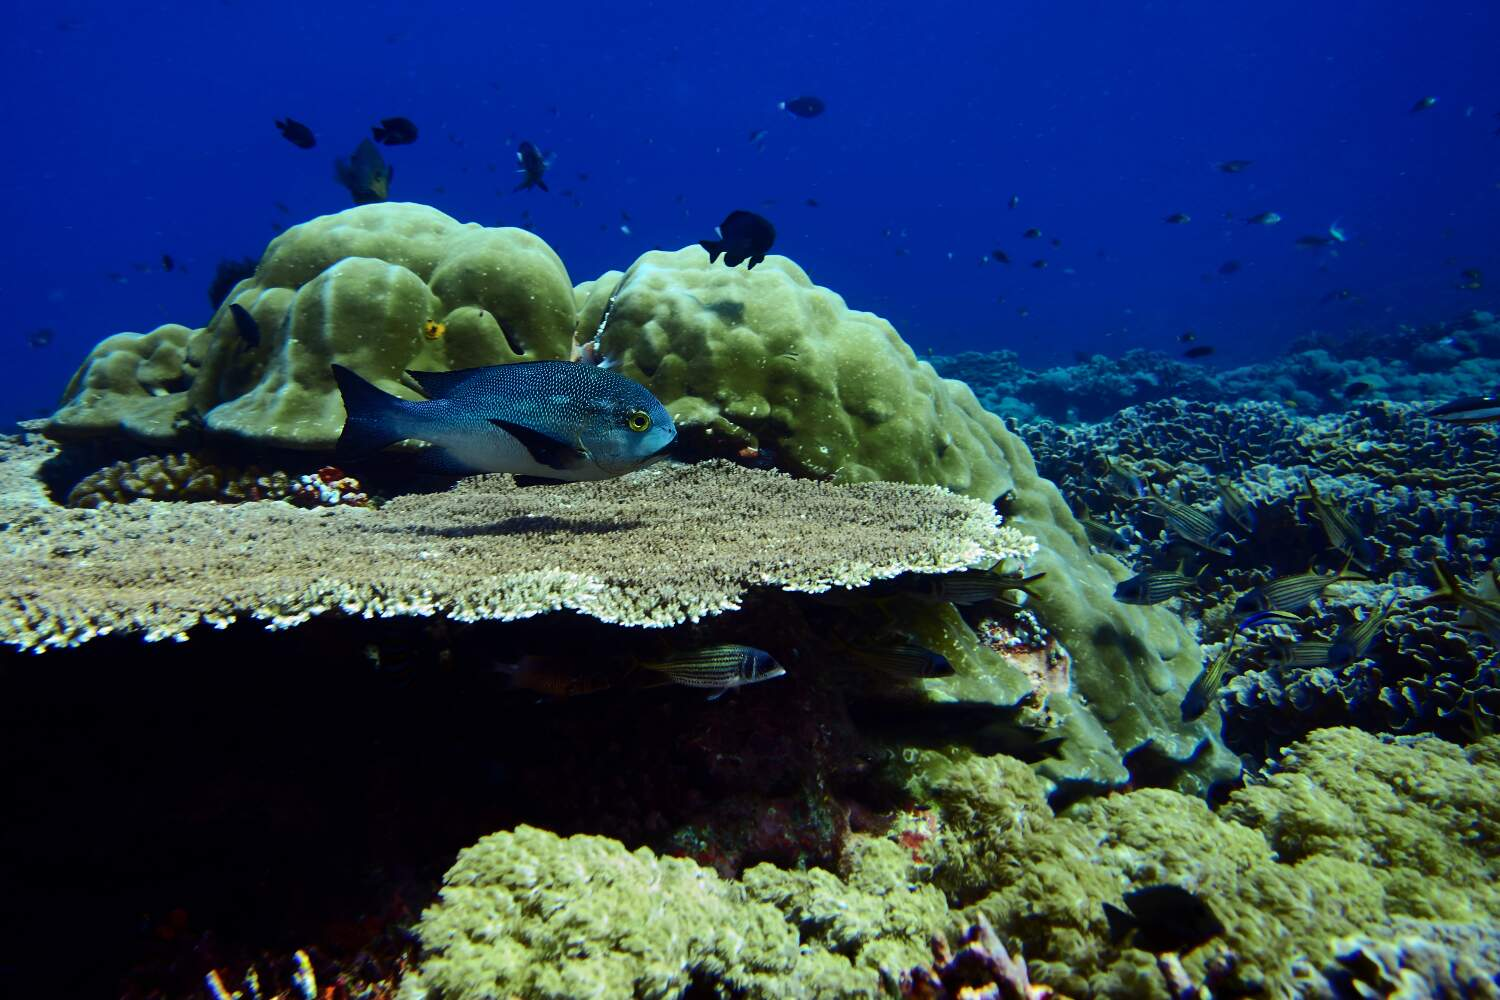 Huge table corals found their home in divesite sunset reef